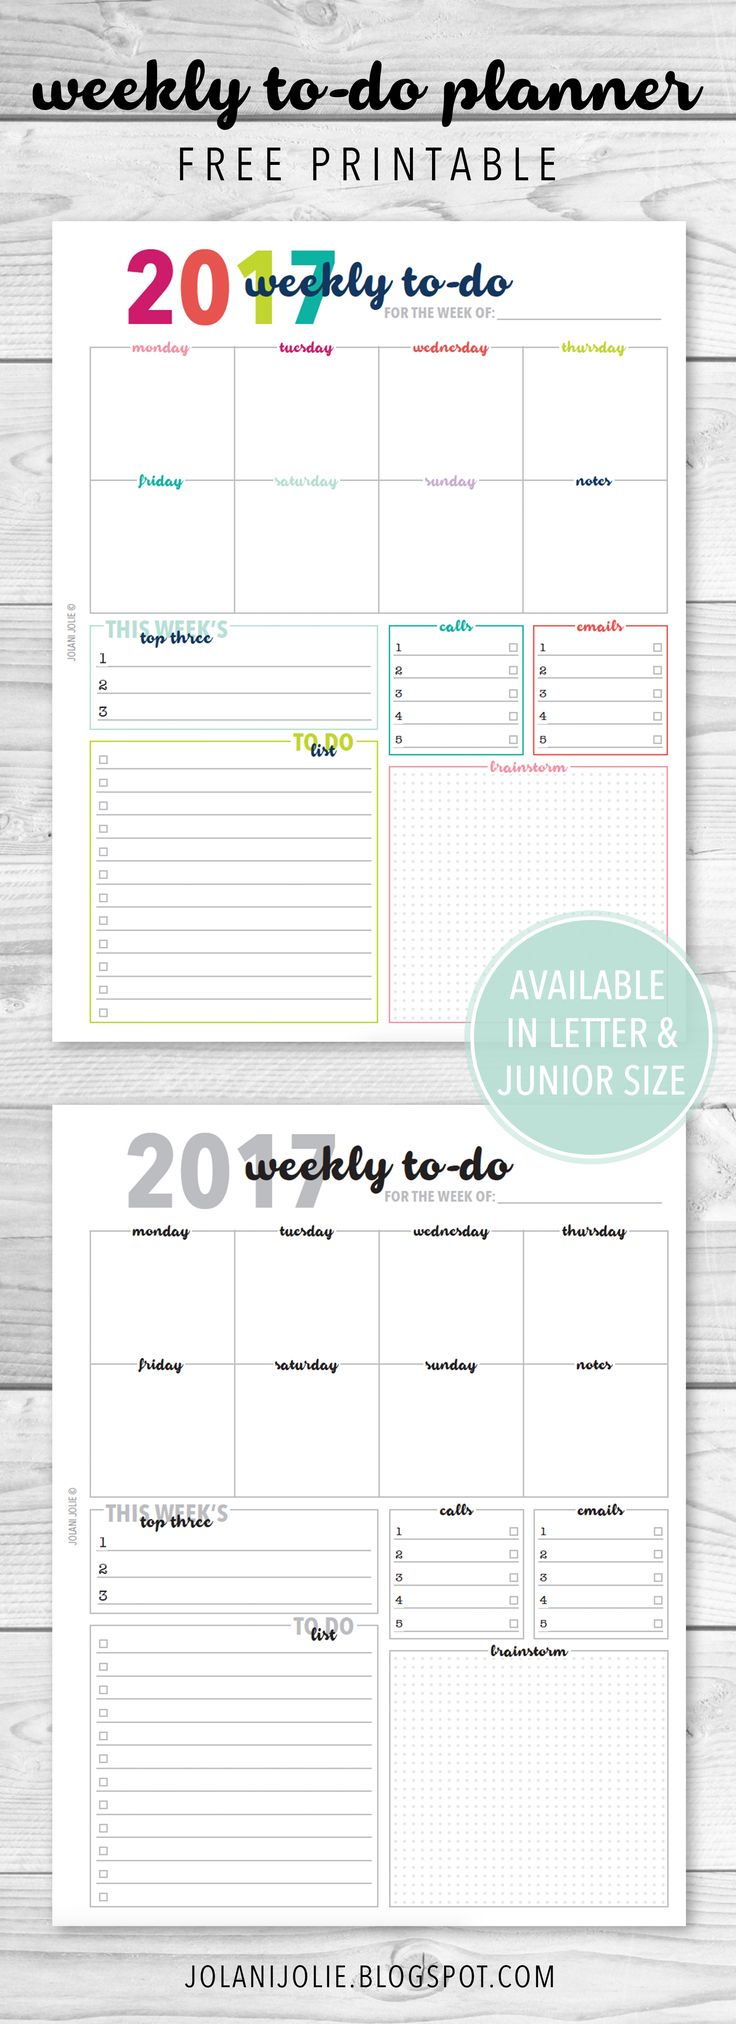 Free Printable: Weekly To Do Planner Insert